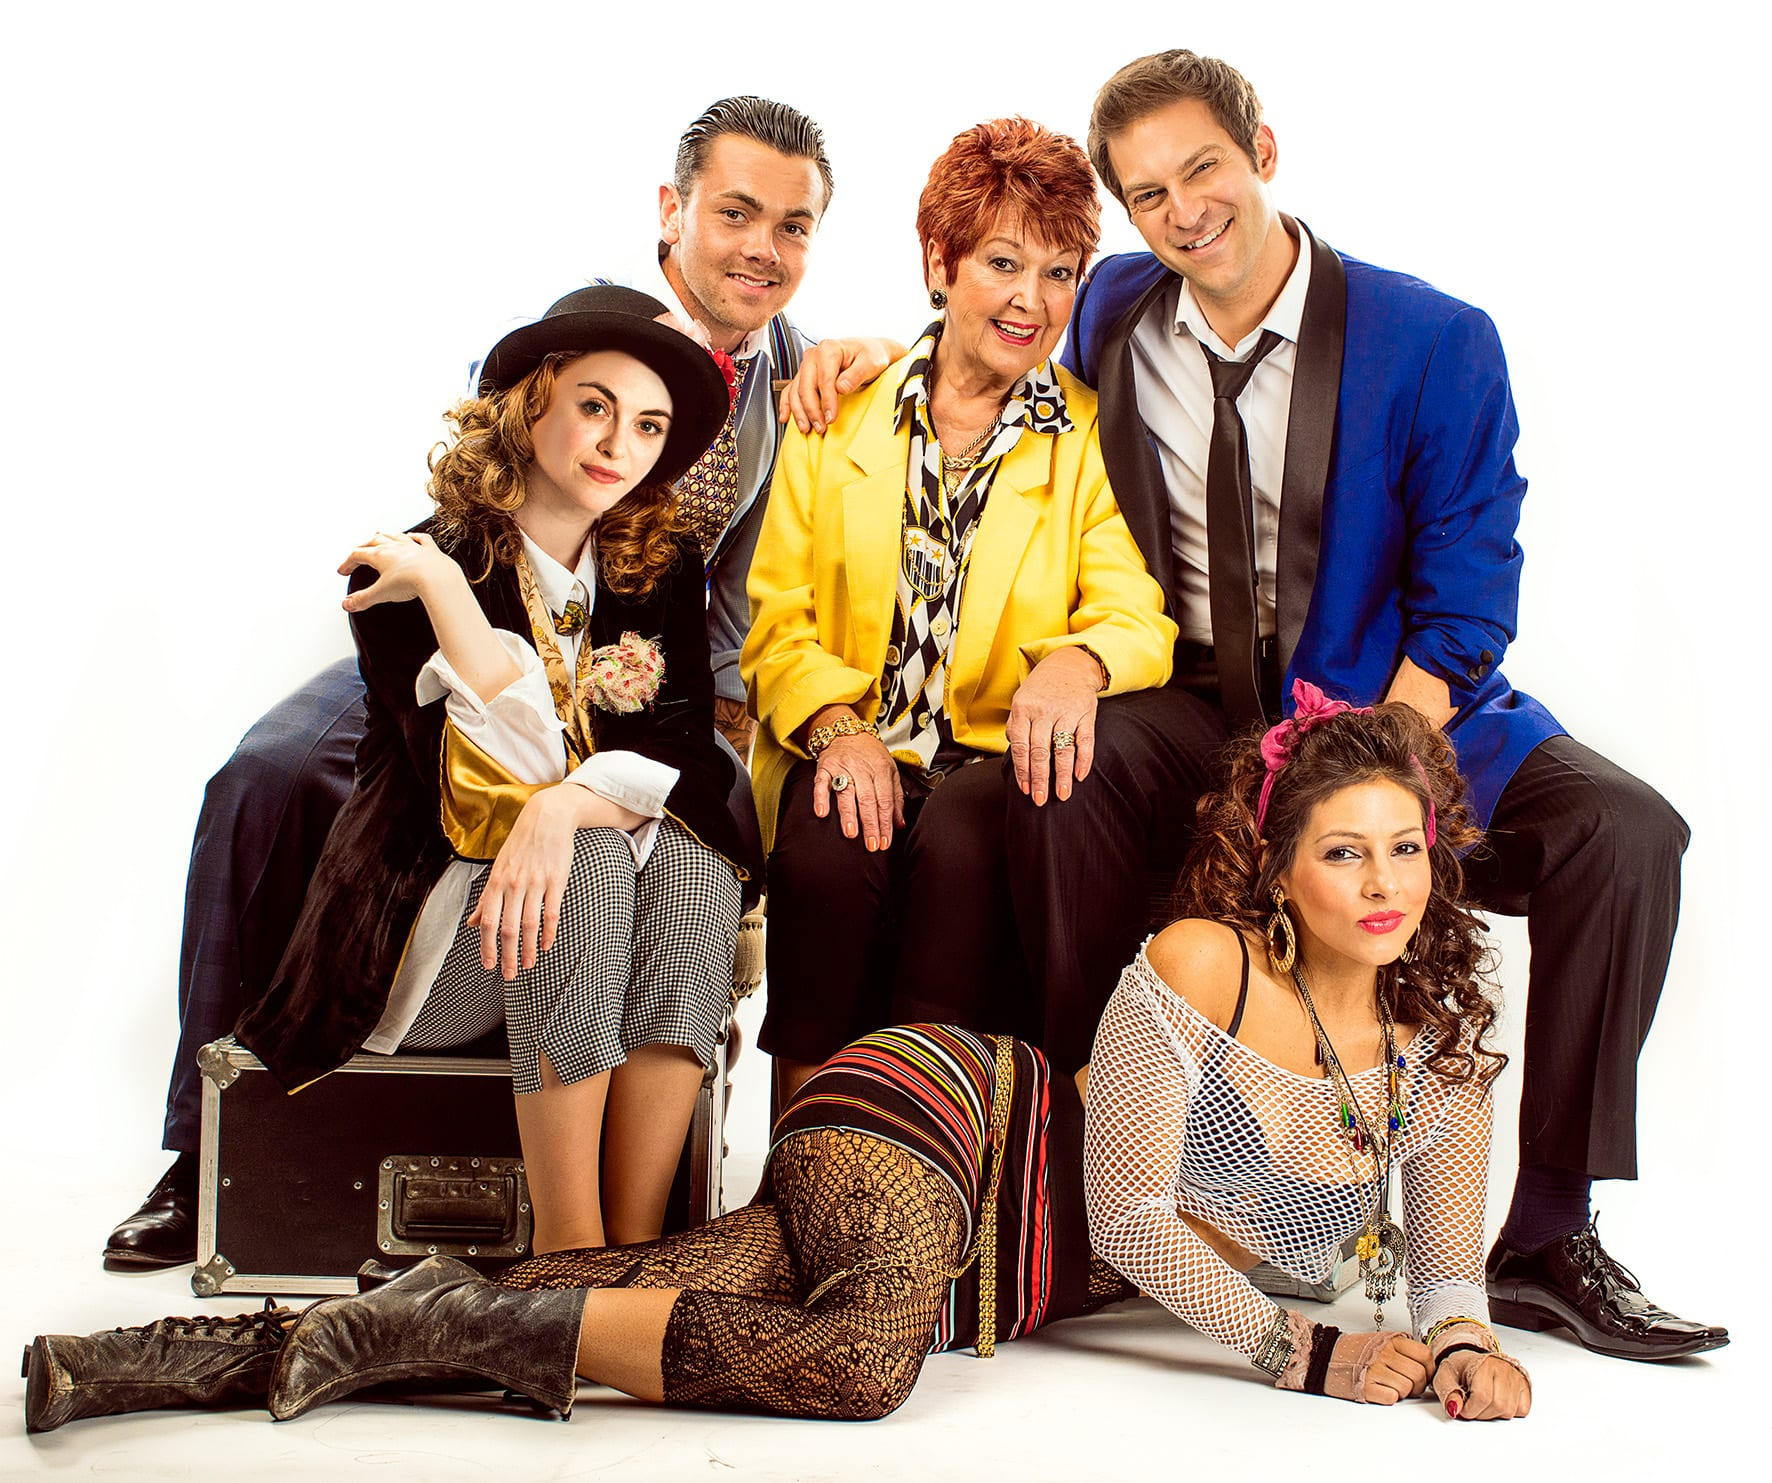 The UK Tour of The Wedding Singer is Heading to Blackpool in 2017